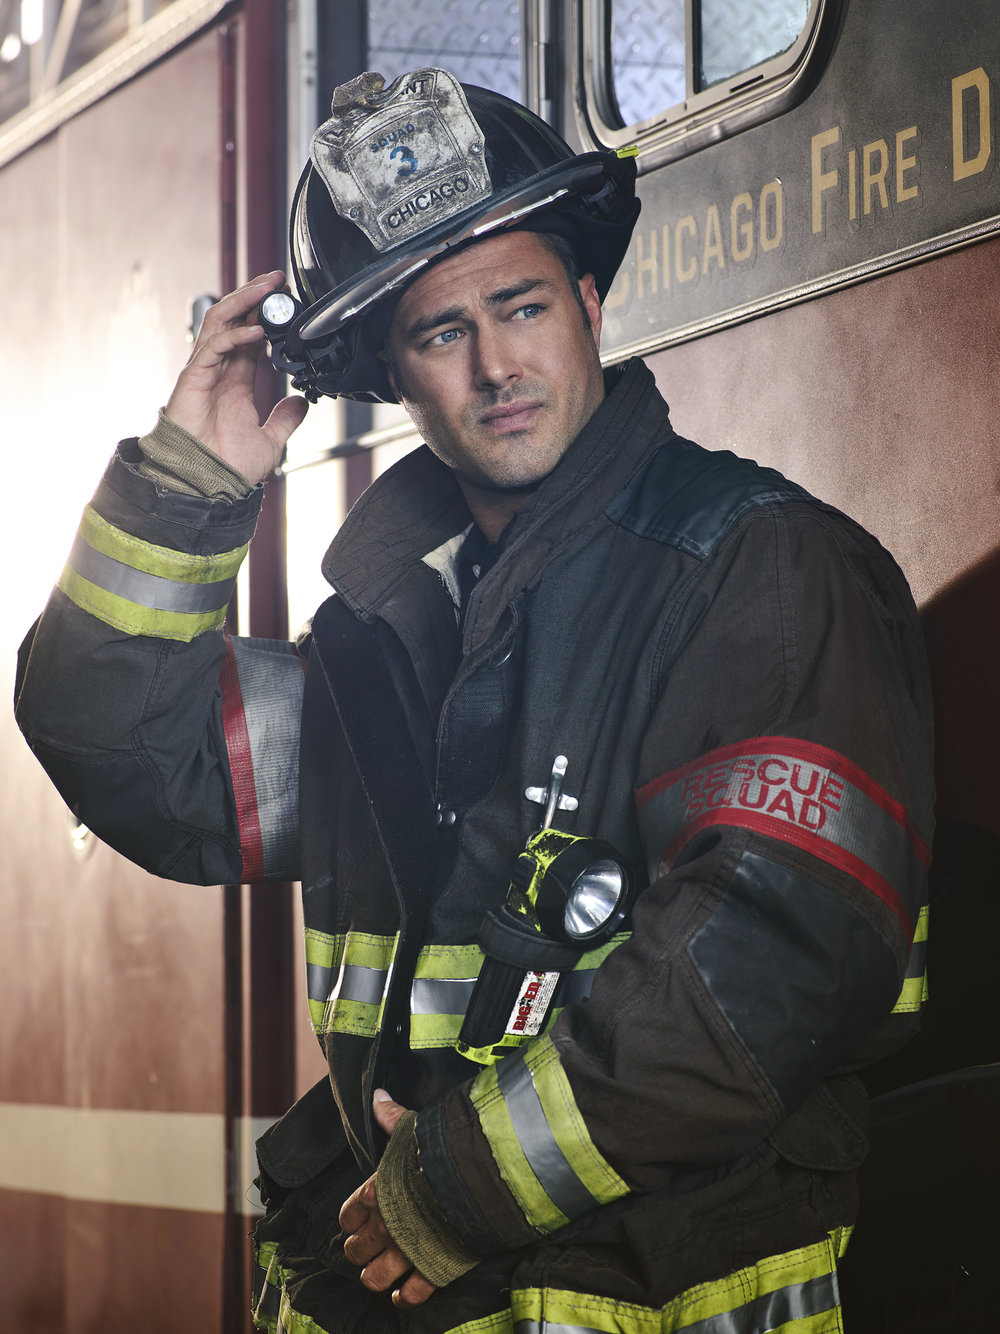 CHICAGO FIRE , NBC - Taylor Kinney